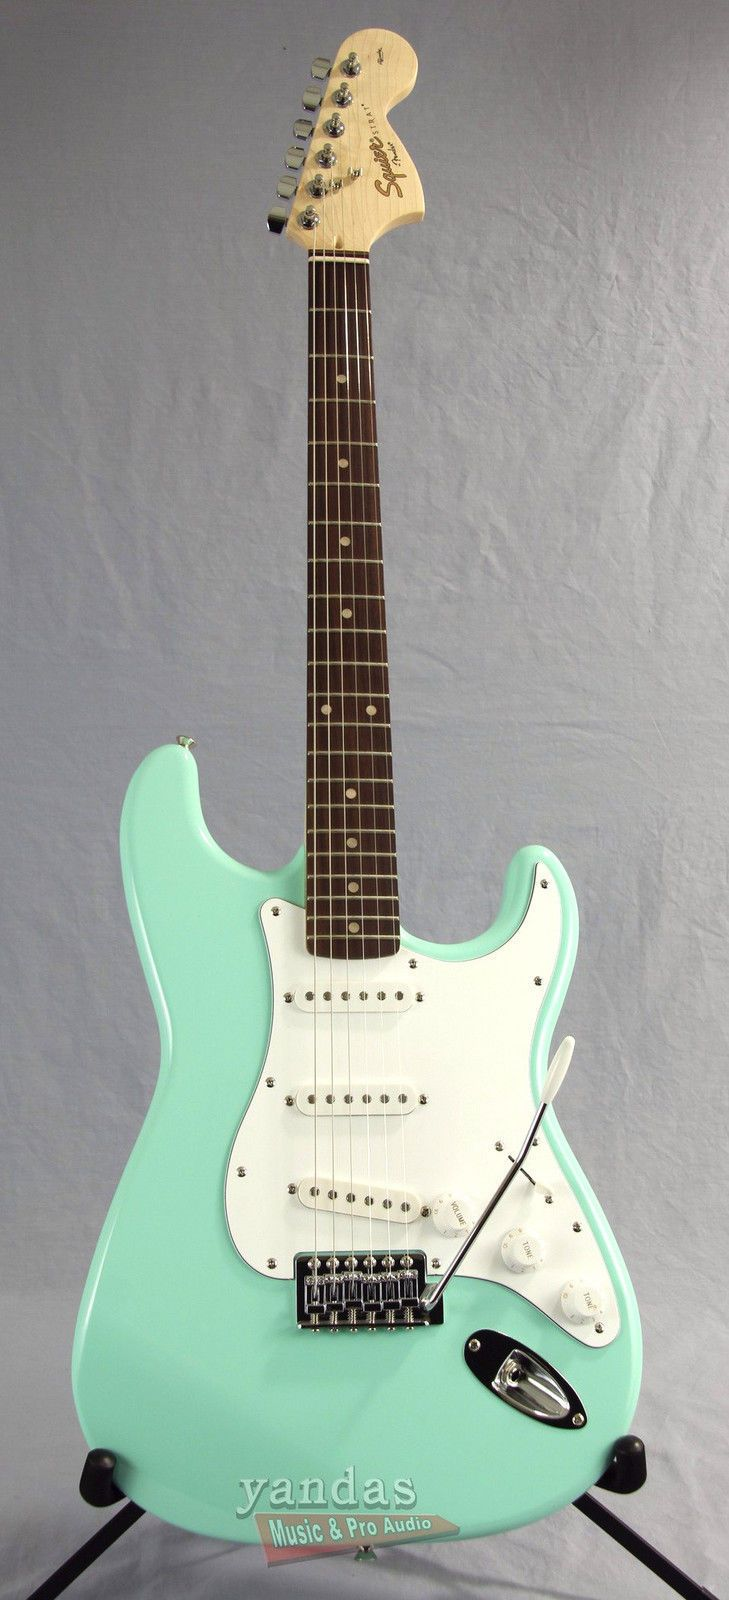 Squier Affinity Stratocaster In Surf Green Squier Electric Guitar Cool Electric Guitars